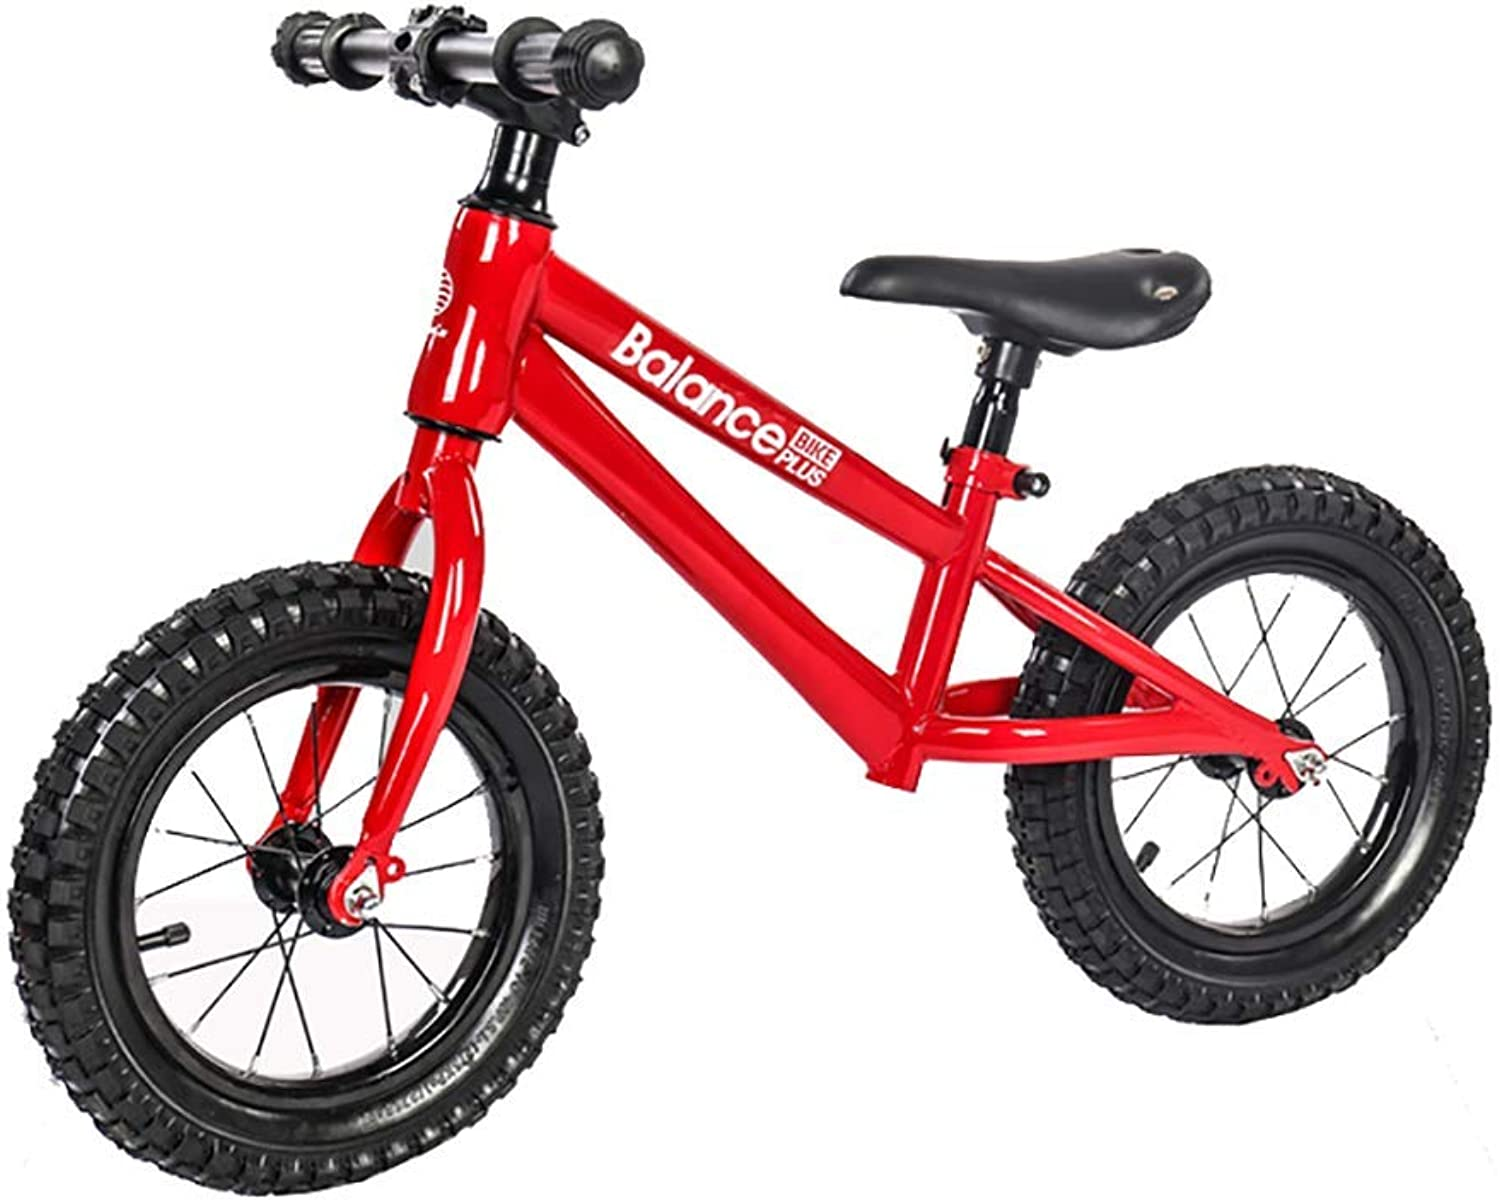 ZNDDB Balance Bike No Pedal With Bell And Hand Brake, Carbon Steel Frame, Adjustable Handlebar, Seat And Stand, 30Kg Capacity